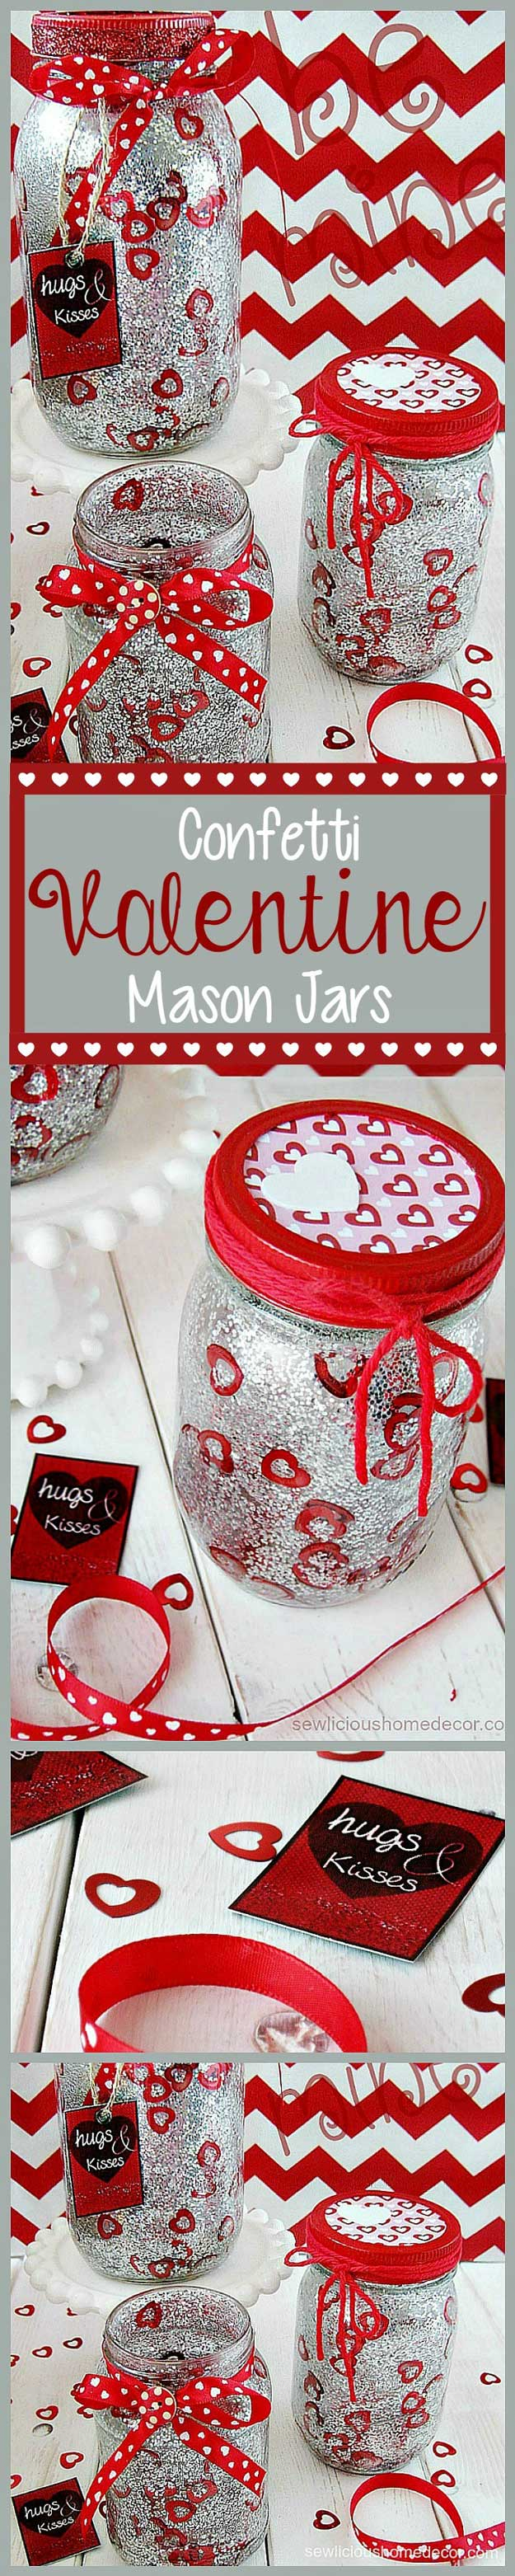 Mason Jar Valentine Gifts and Crafts   DIY Ideas for Valentines Day for Cute Gift Giving and Decor   Red Valentine Jars with Glitter and Confetti   #valentines